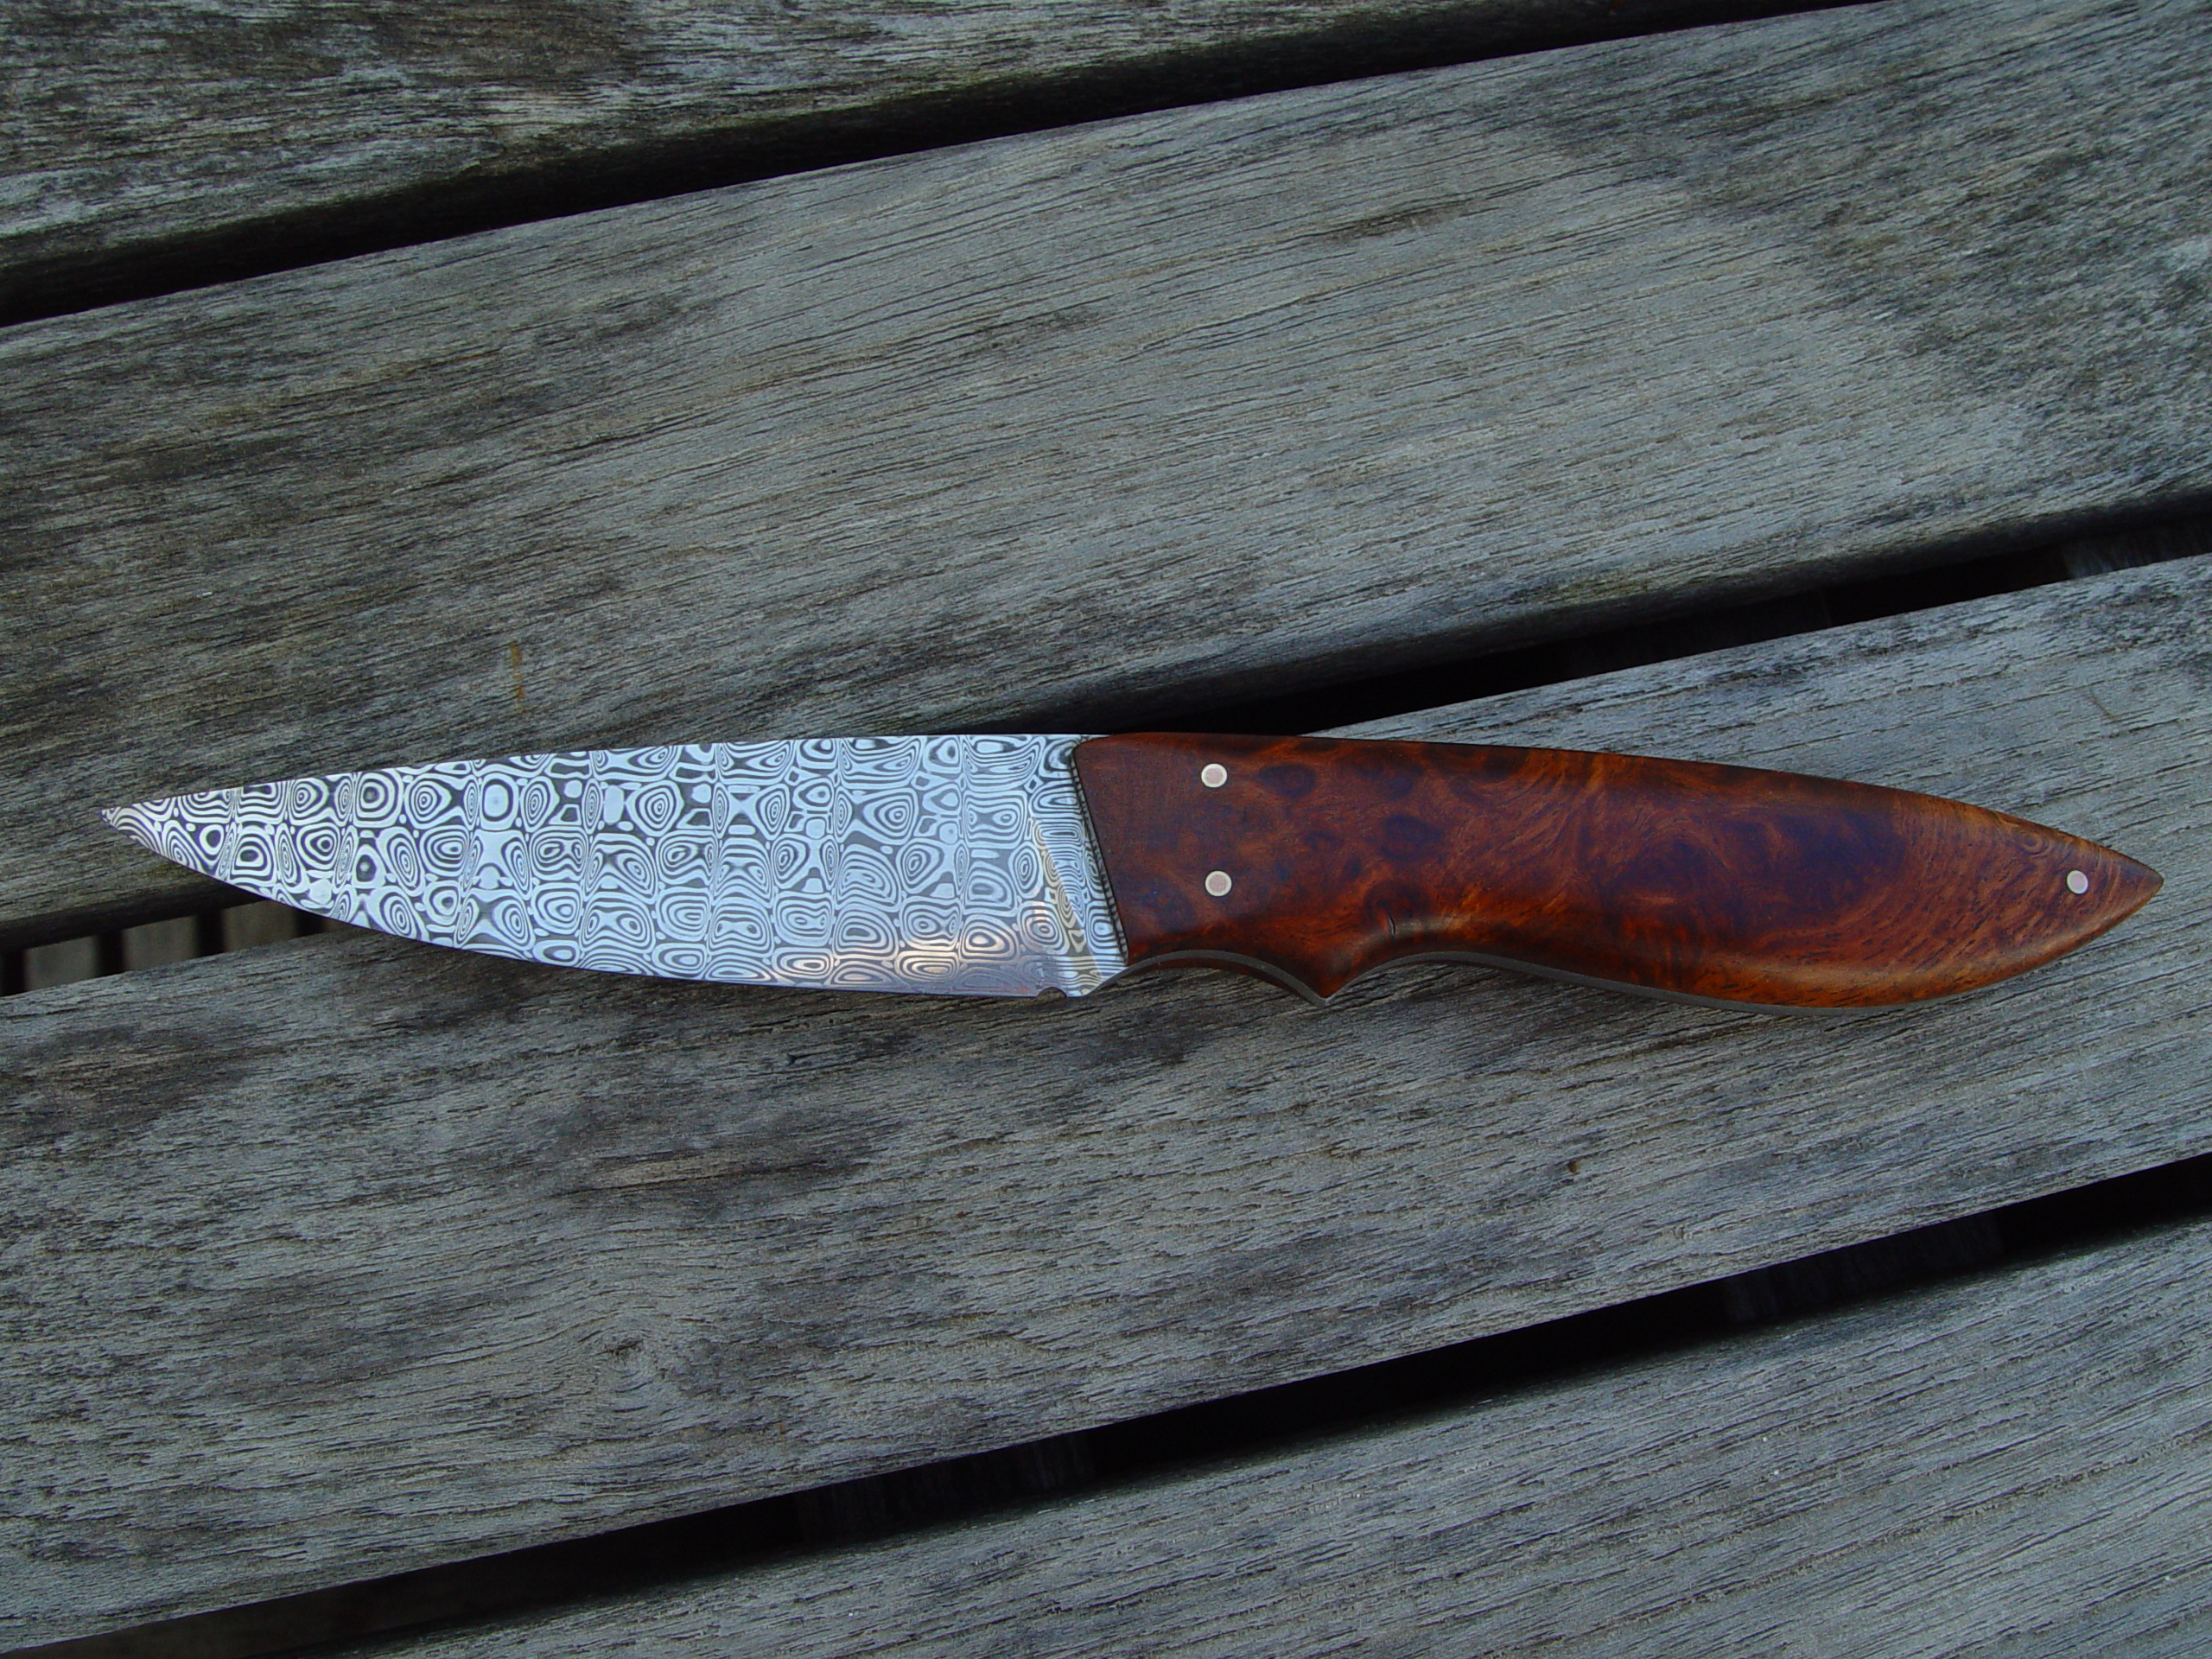 Bird and Trout with Camphor handle